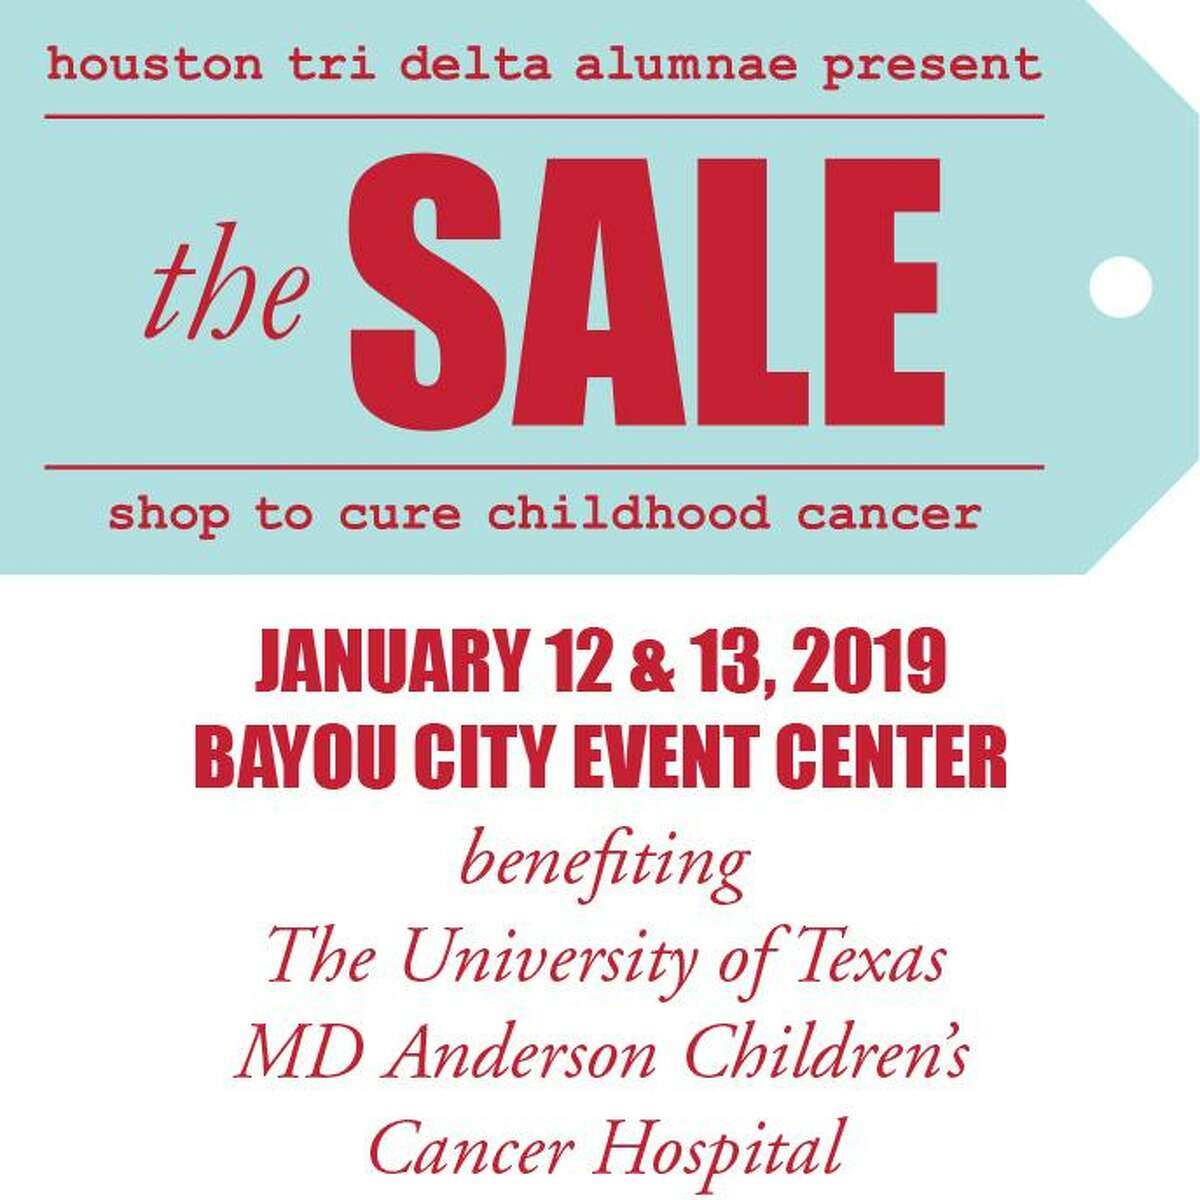 The SALE, presented by the Houston Tri Delta alumnae chapter, will be held on Jan. 12-13 and benefits pediatric cancer research.